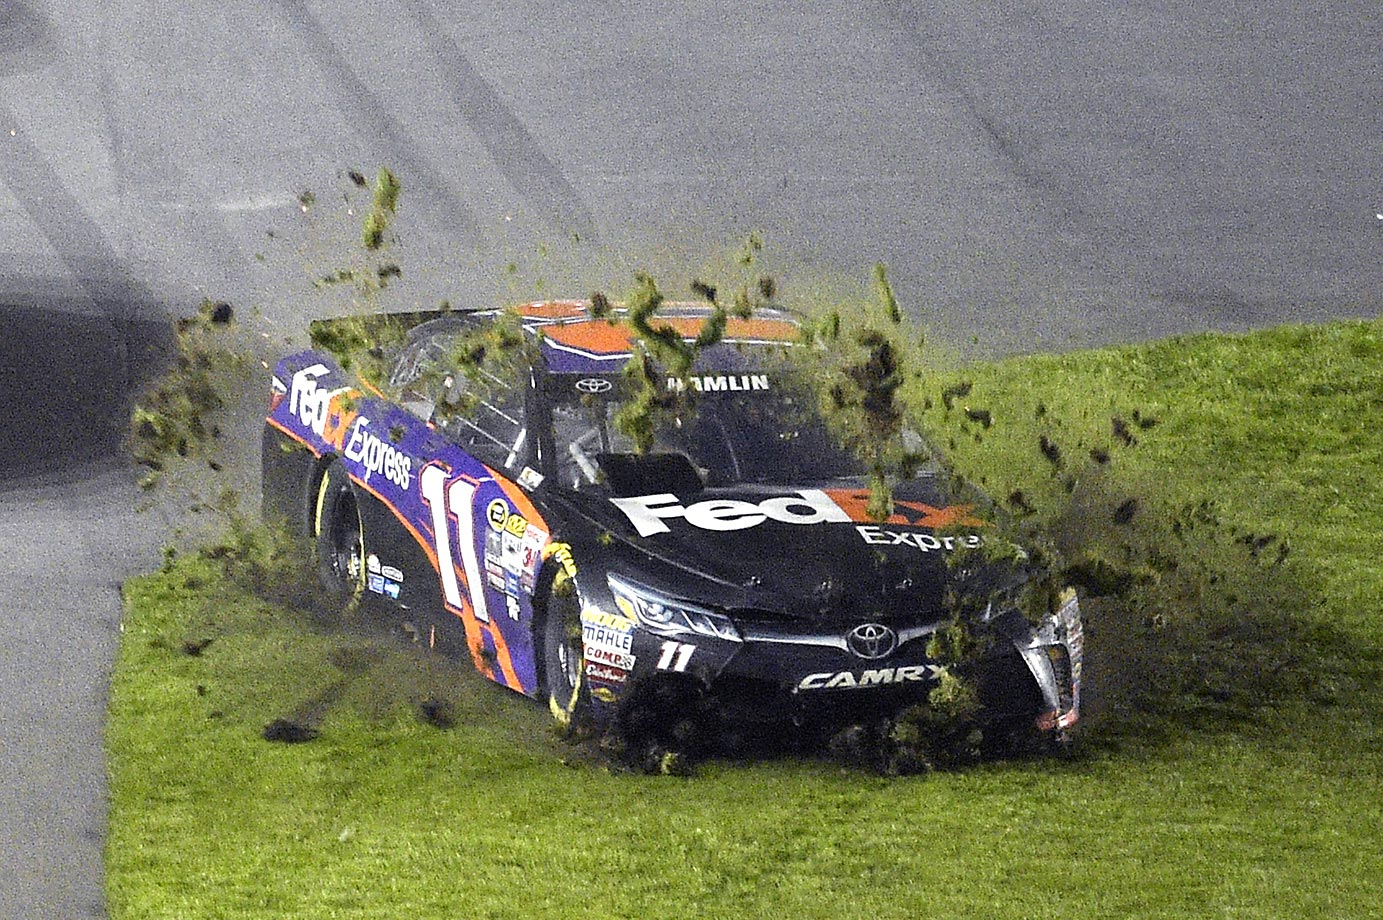 Denny Hamlin digs up the infield grass while trying to avoid a multi-car accident.